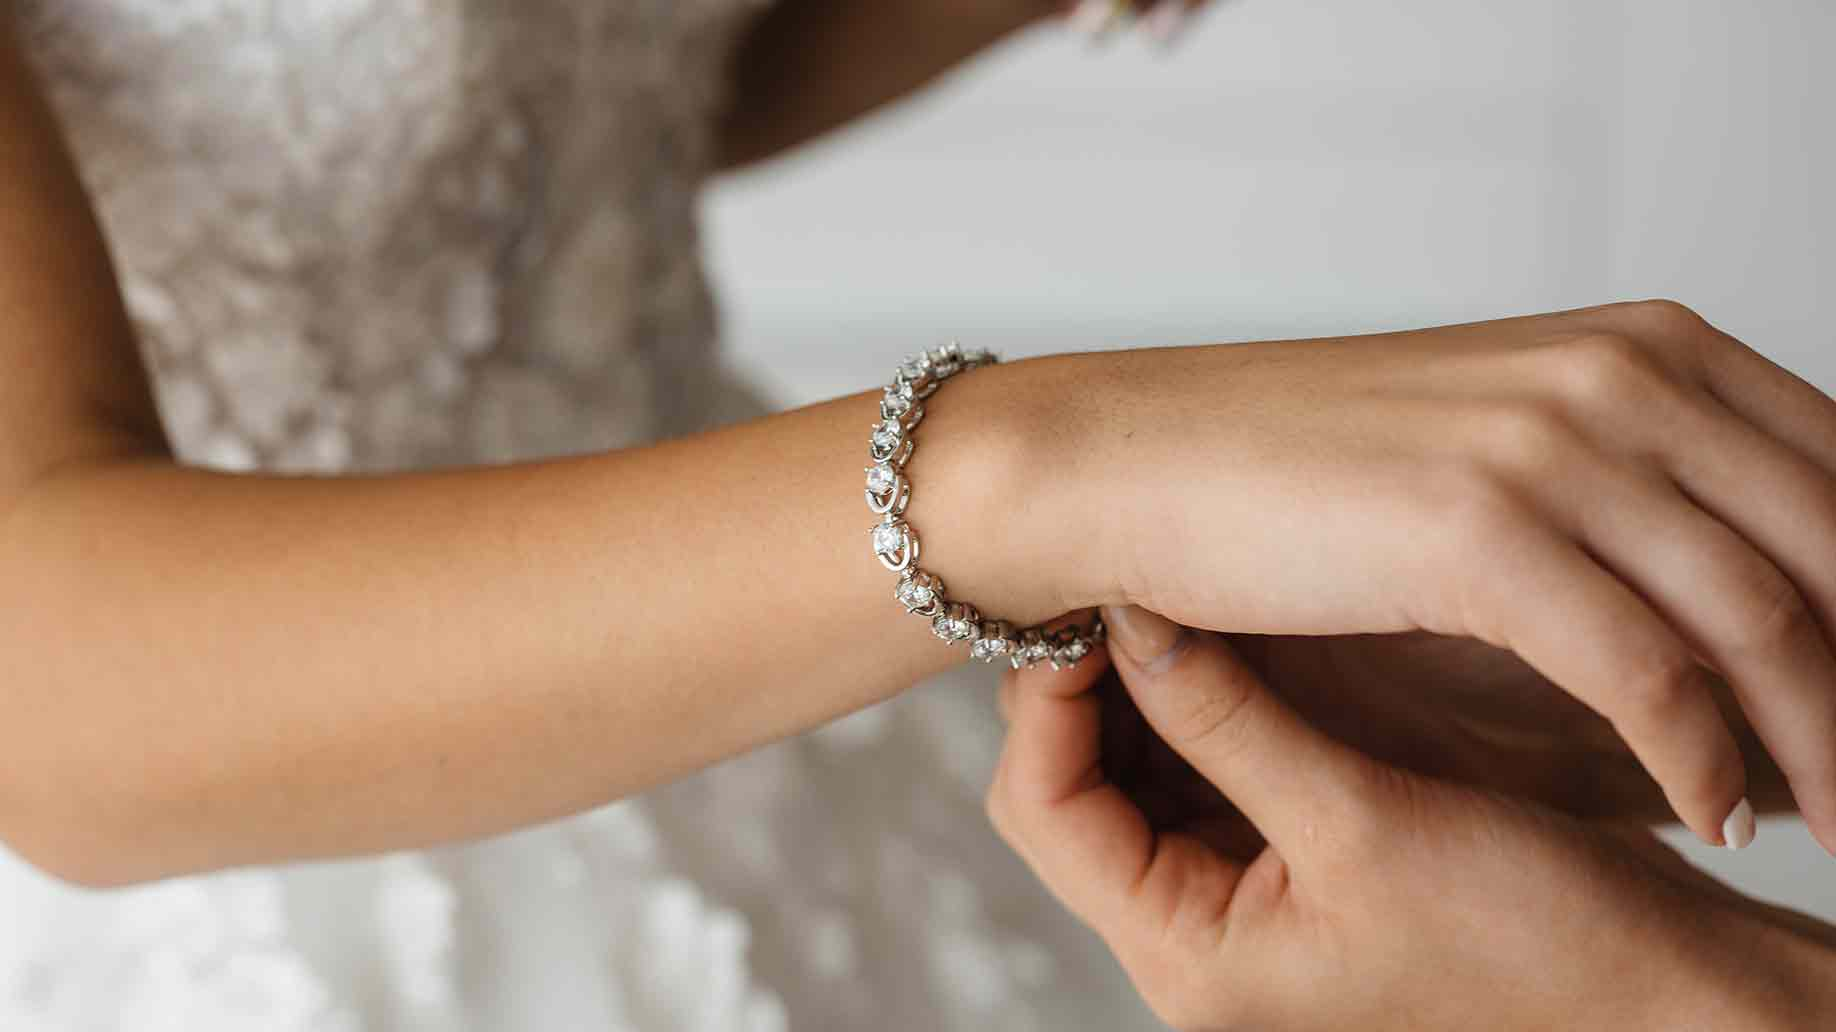 beautiful bride wearing a bracelet on her arm for her wedding